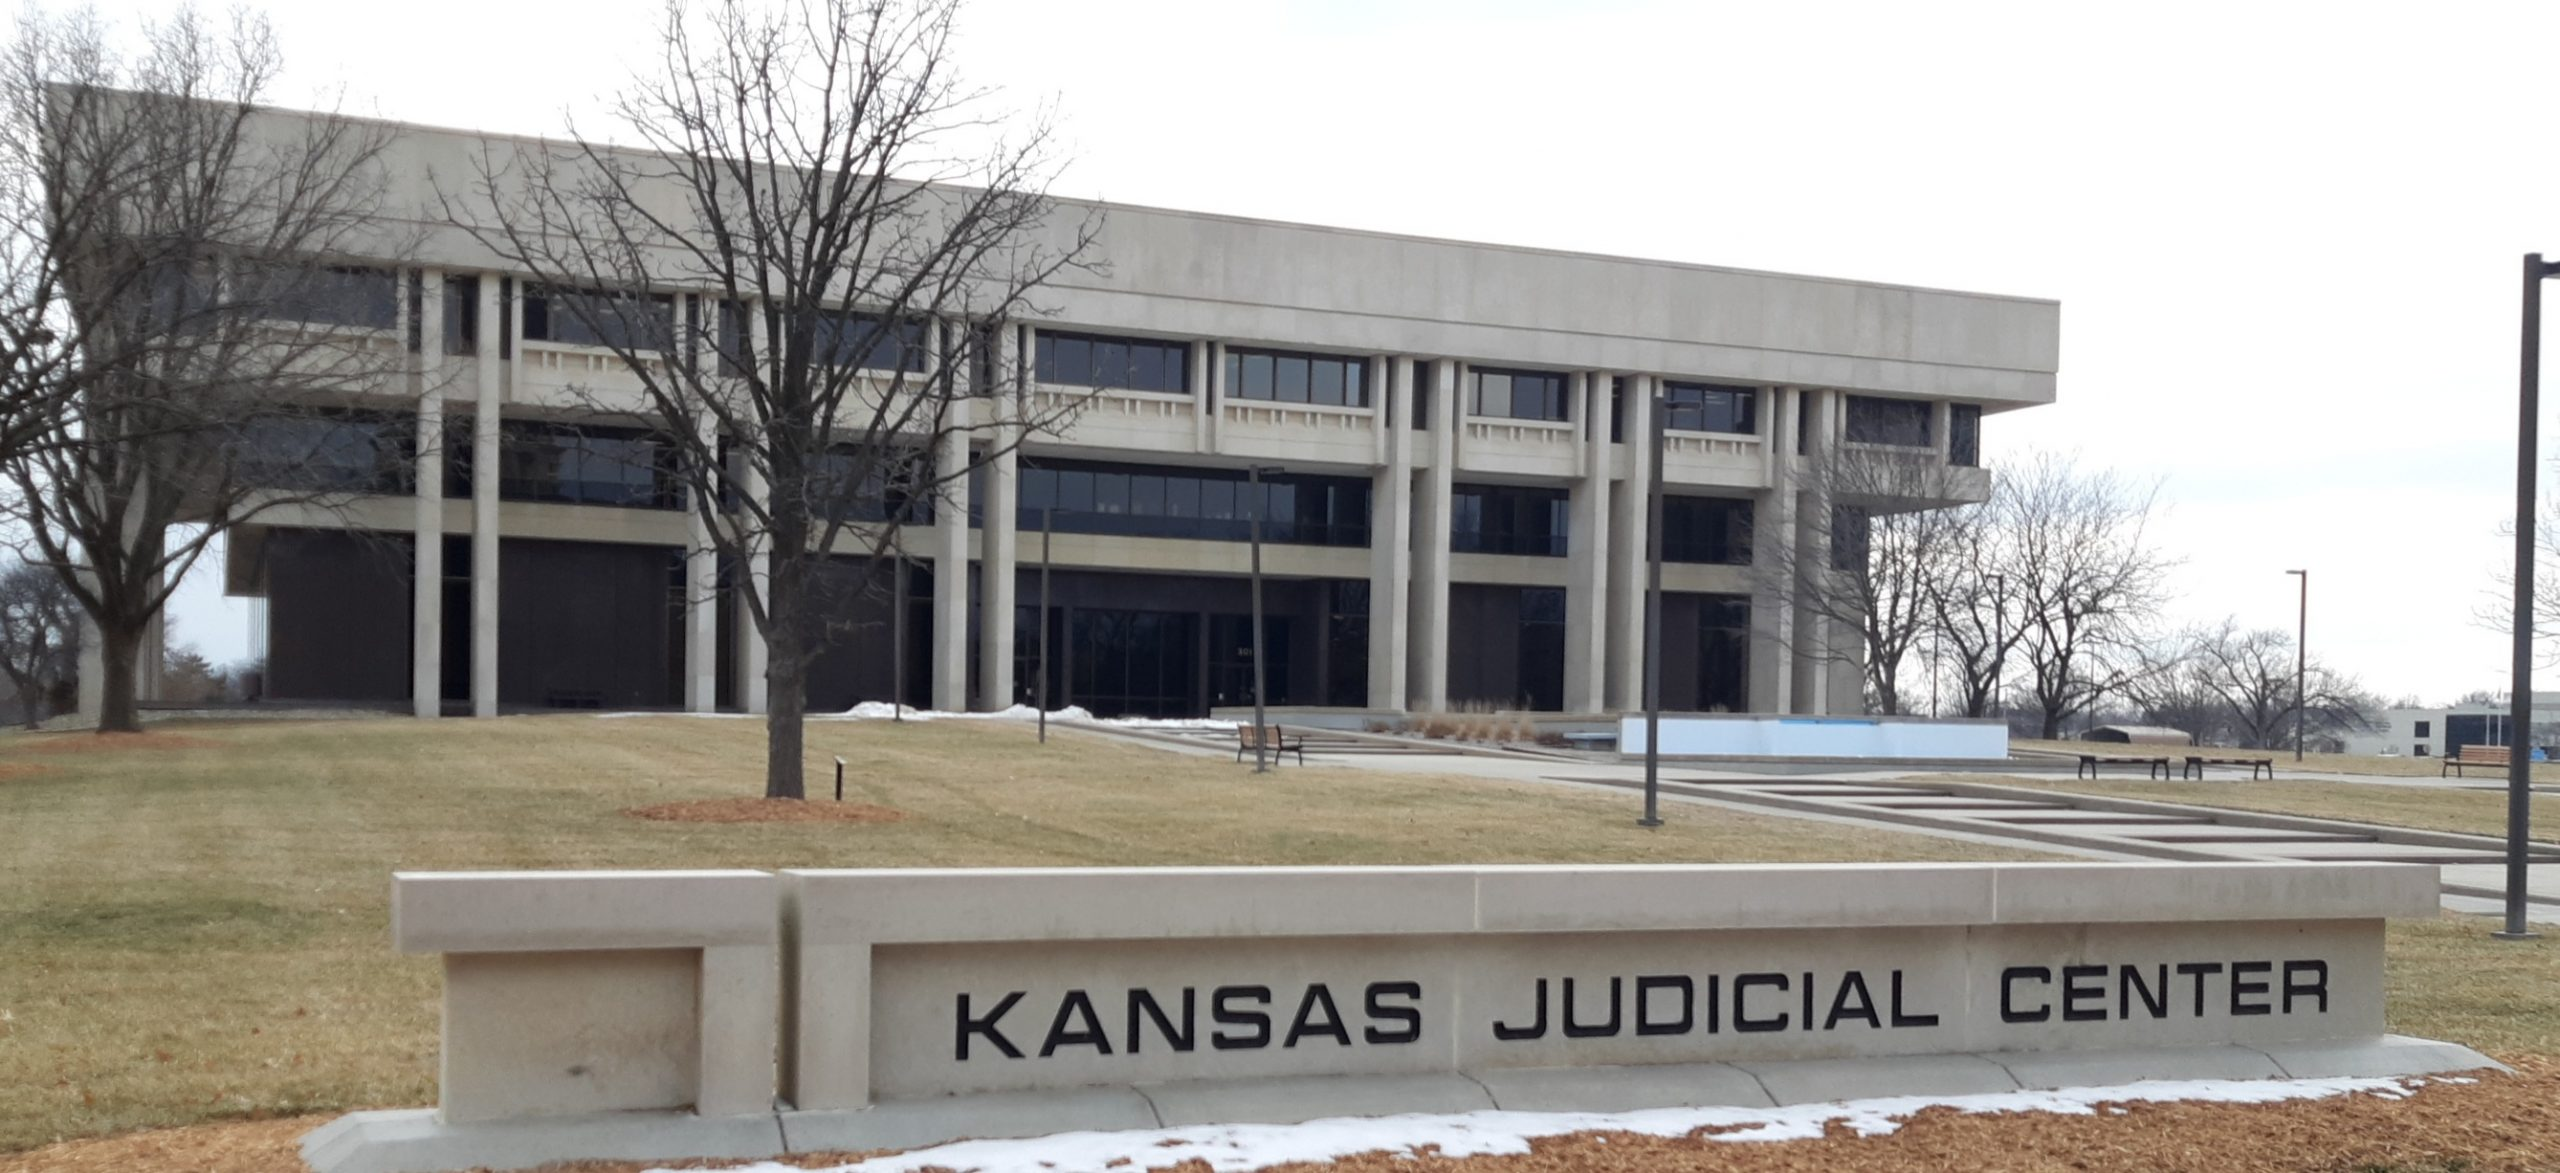 Jacy Hurst, a Lawrence attorney with the Kutak Rock firm in Kansas City, Missouri, is Gov. Laura Kelly's nominee for a vacancy on the Kansas Court of Appeals. Her nomination is subject to Kansas Senate confirmation. (Tim Carpenter/Kansas Reflector)